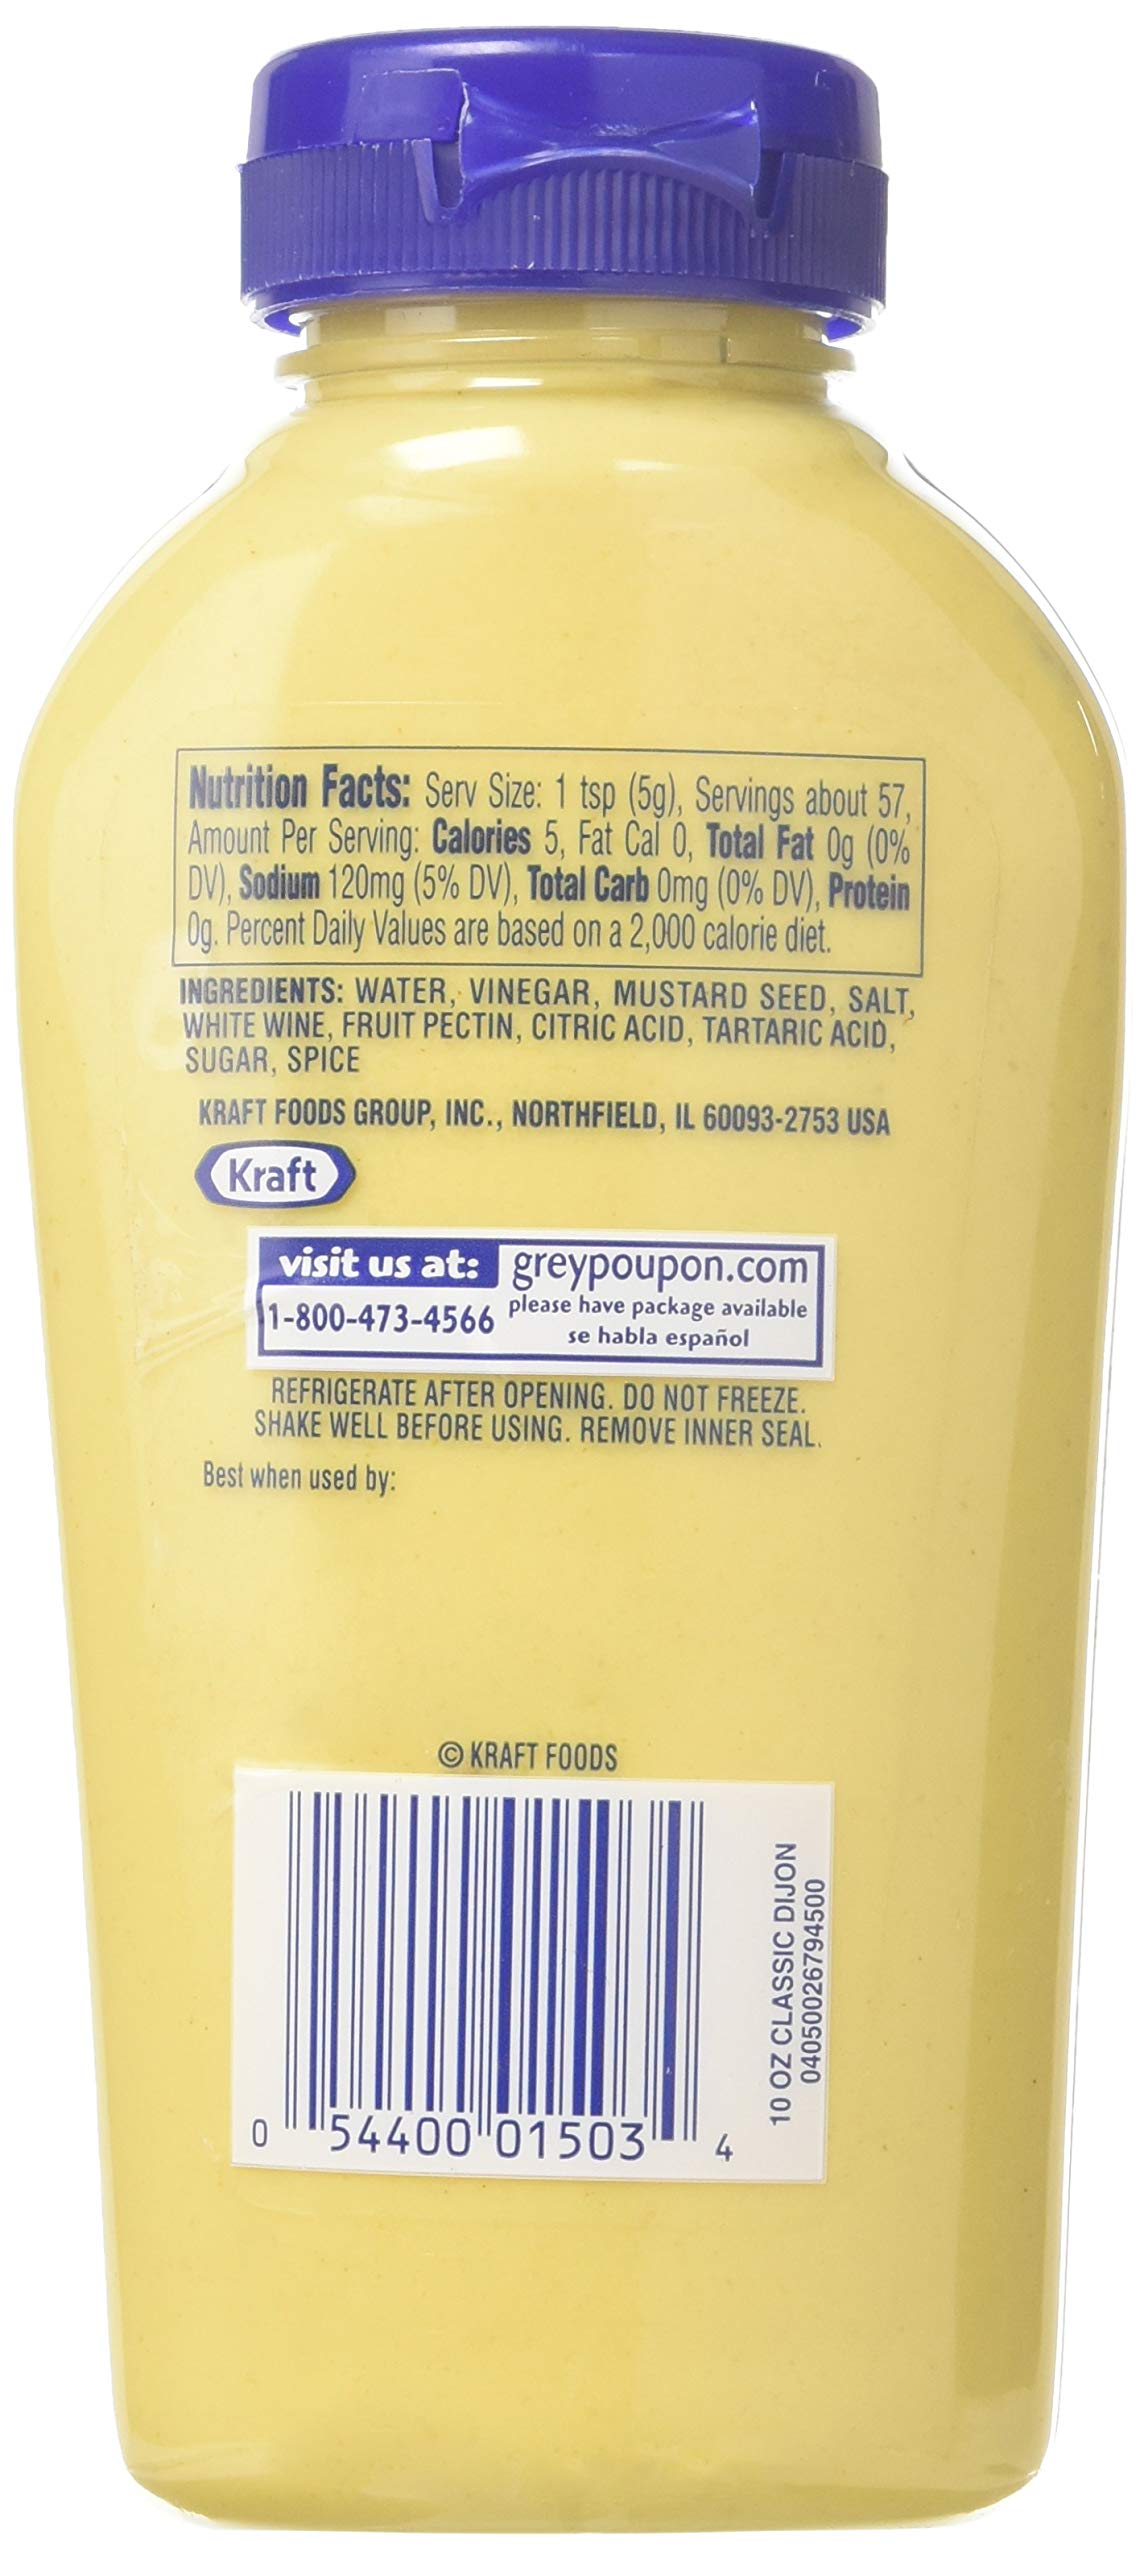 Grey Poupon Dijon Mustard (10oz Bottle) 4 One 10 oz. bottle of Grey Poupon Dijon Mustard Grey Poupon Dijon Mustard uses the finest ingredients for a gourmet condiment #1 Grade Mustard Seeds and spices provide strong, delicious flavor